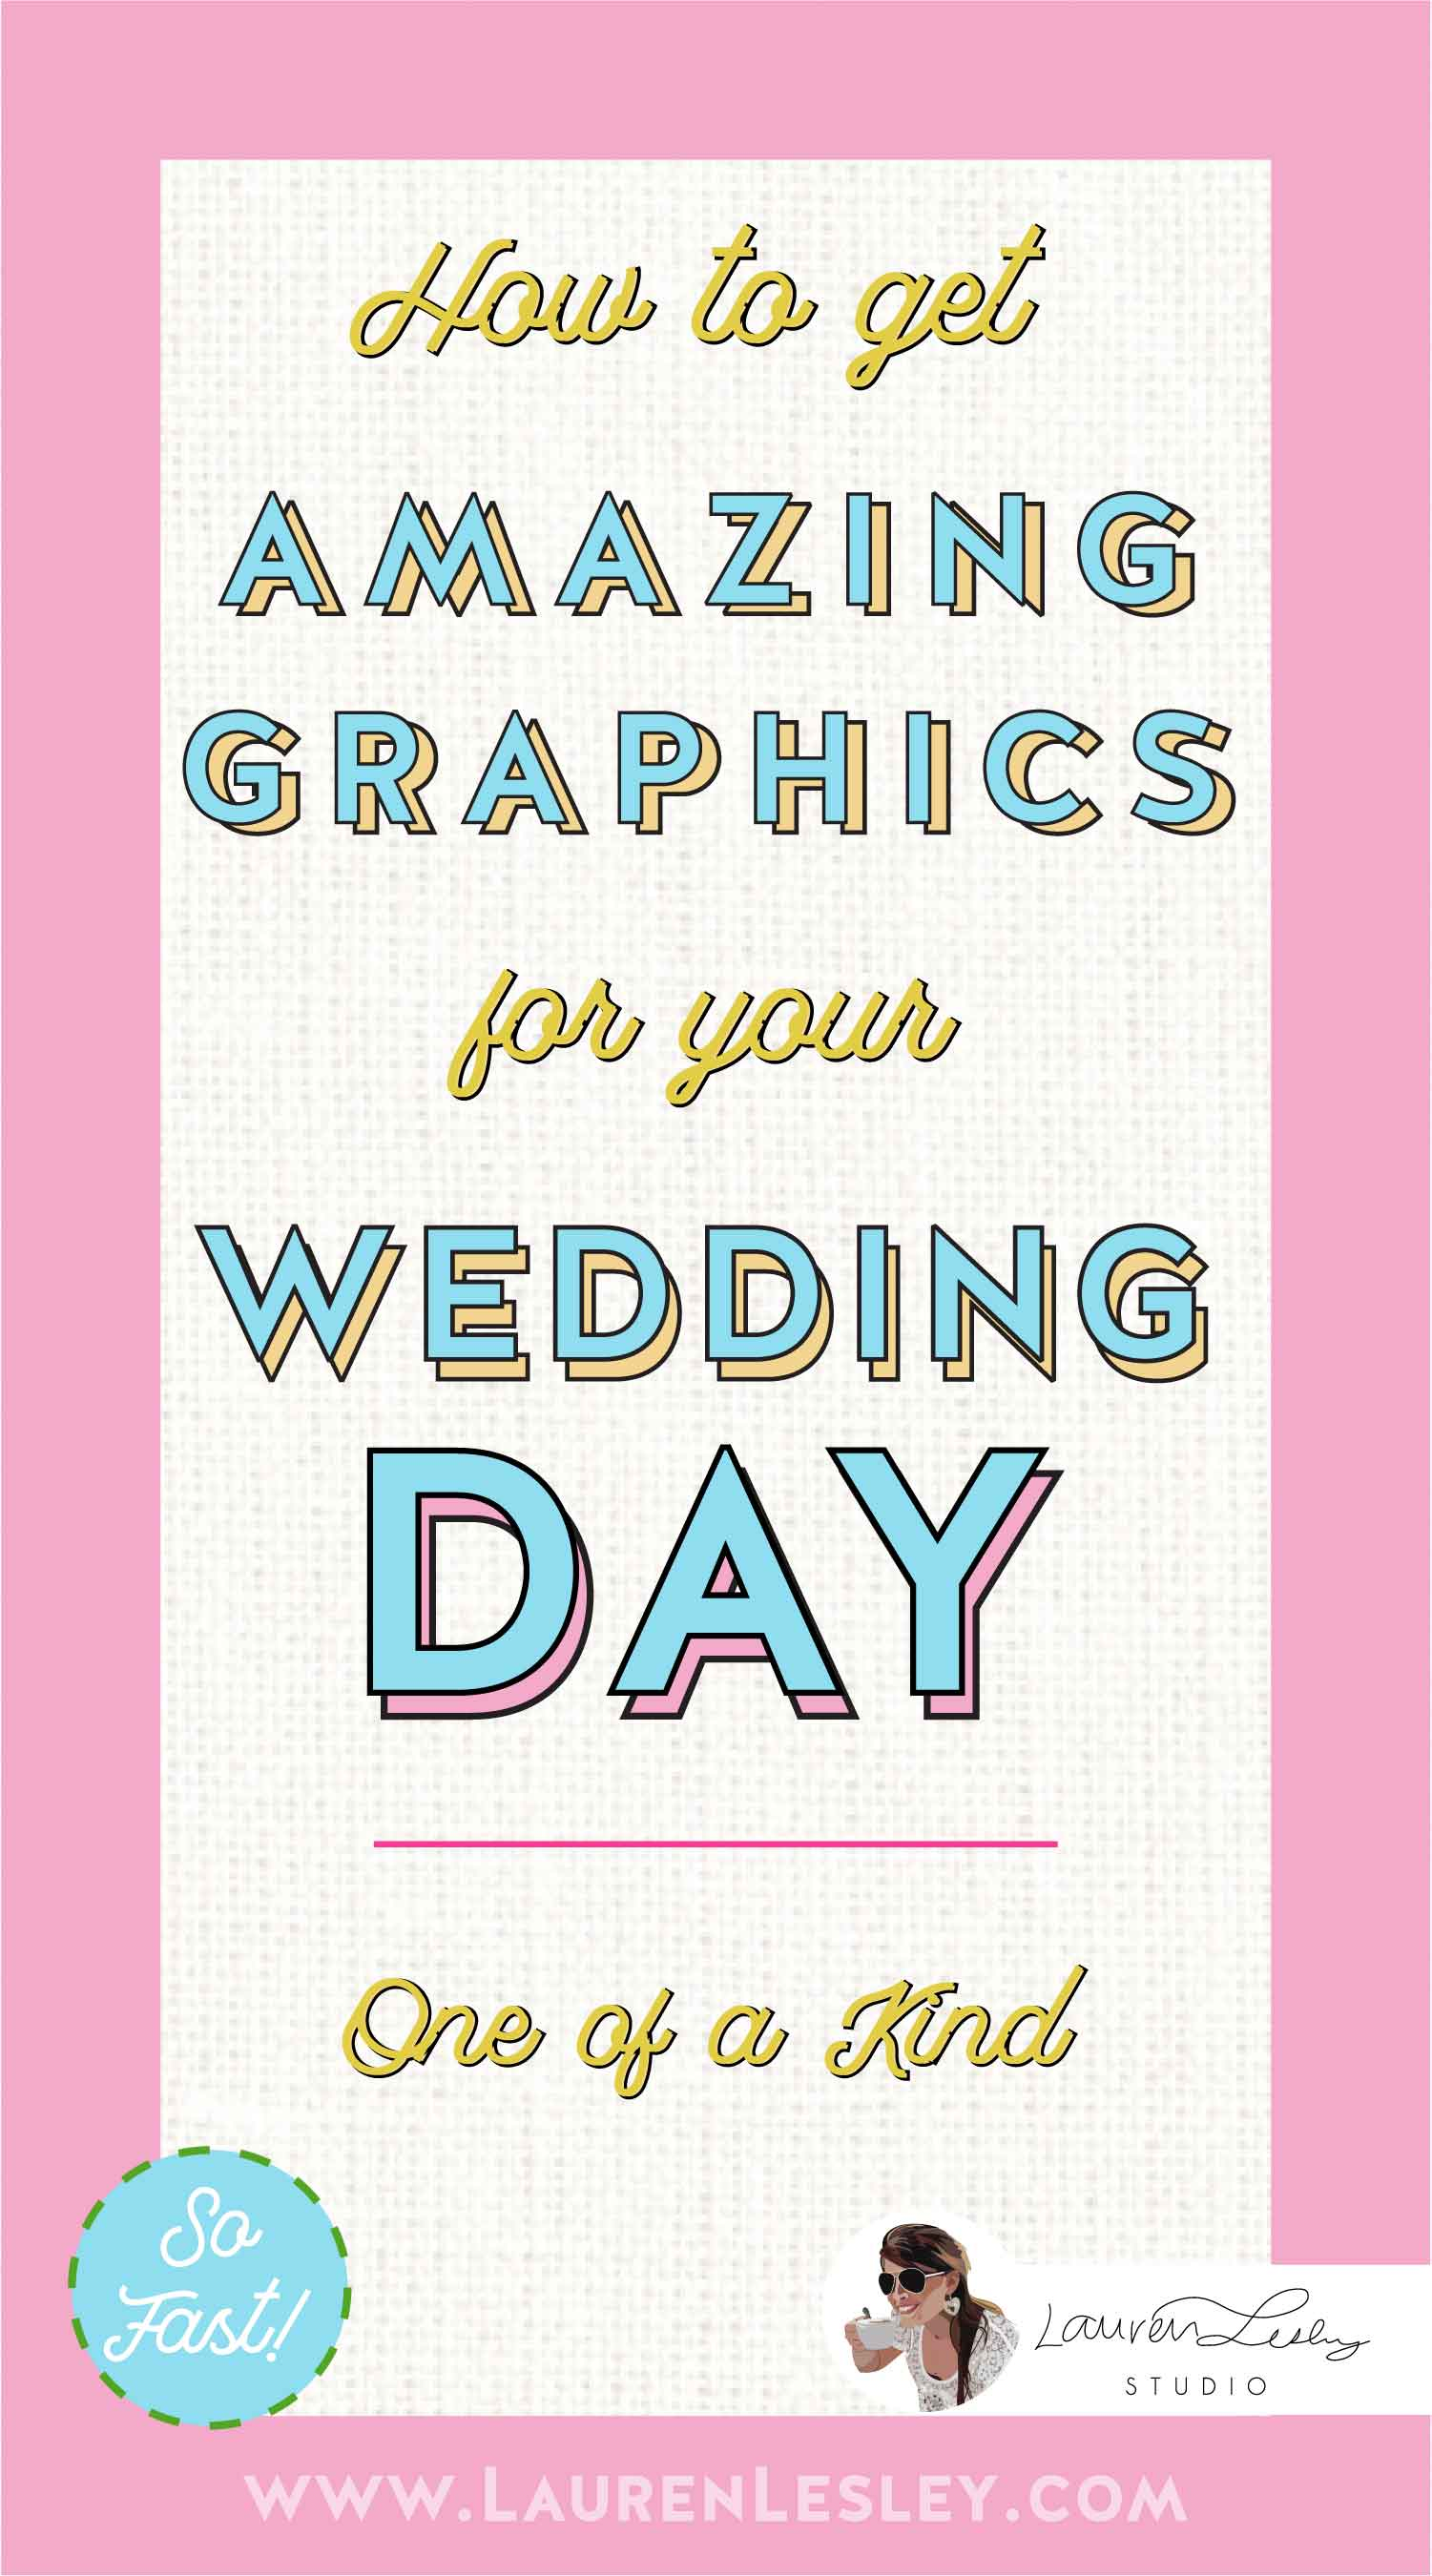 Wedding Day Graphics Bride & Groom Portrait Bridesmaid